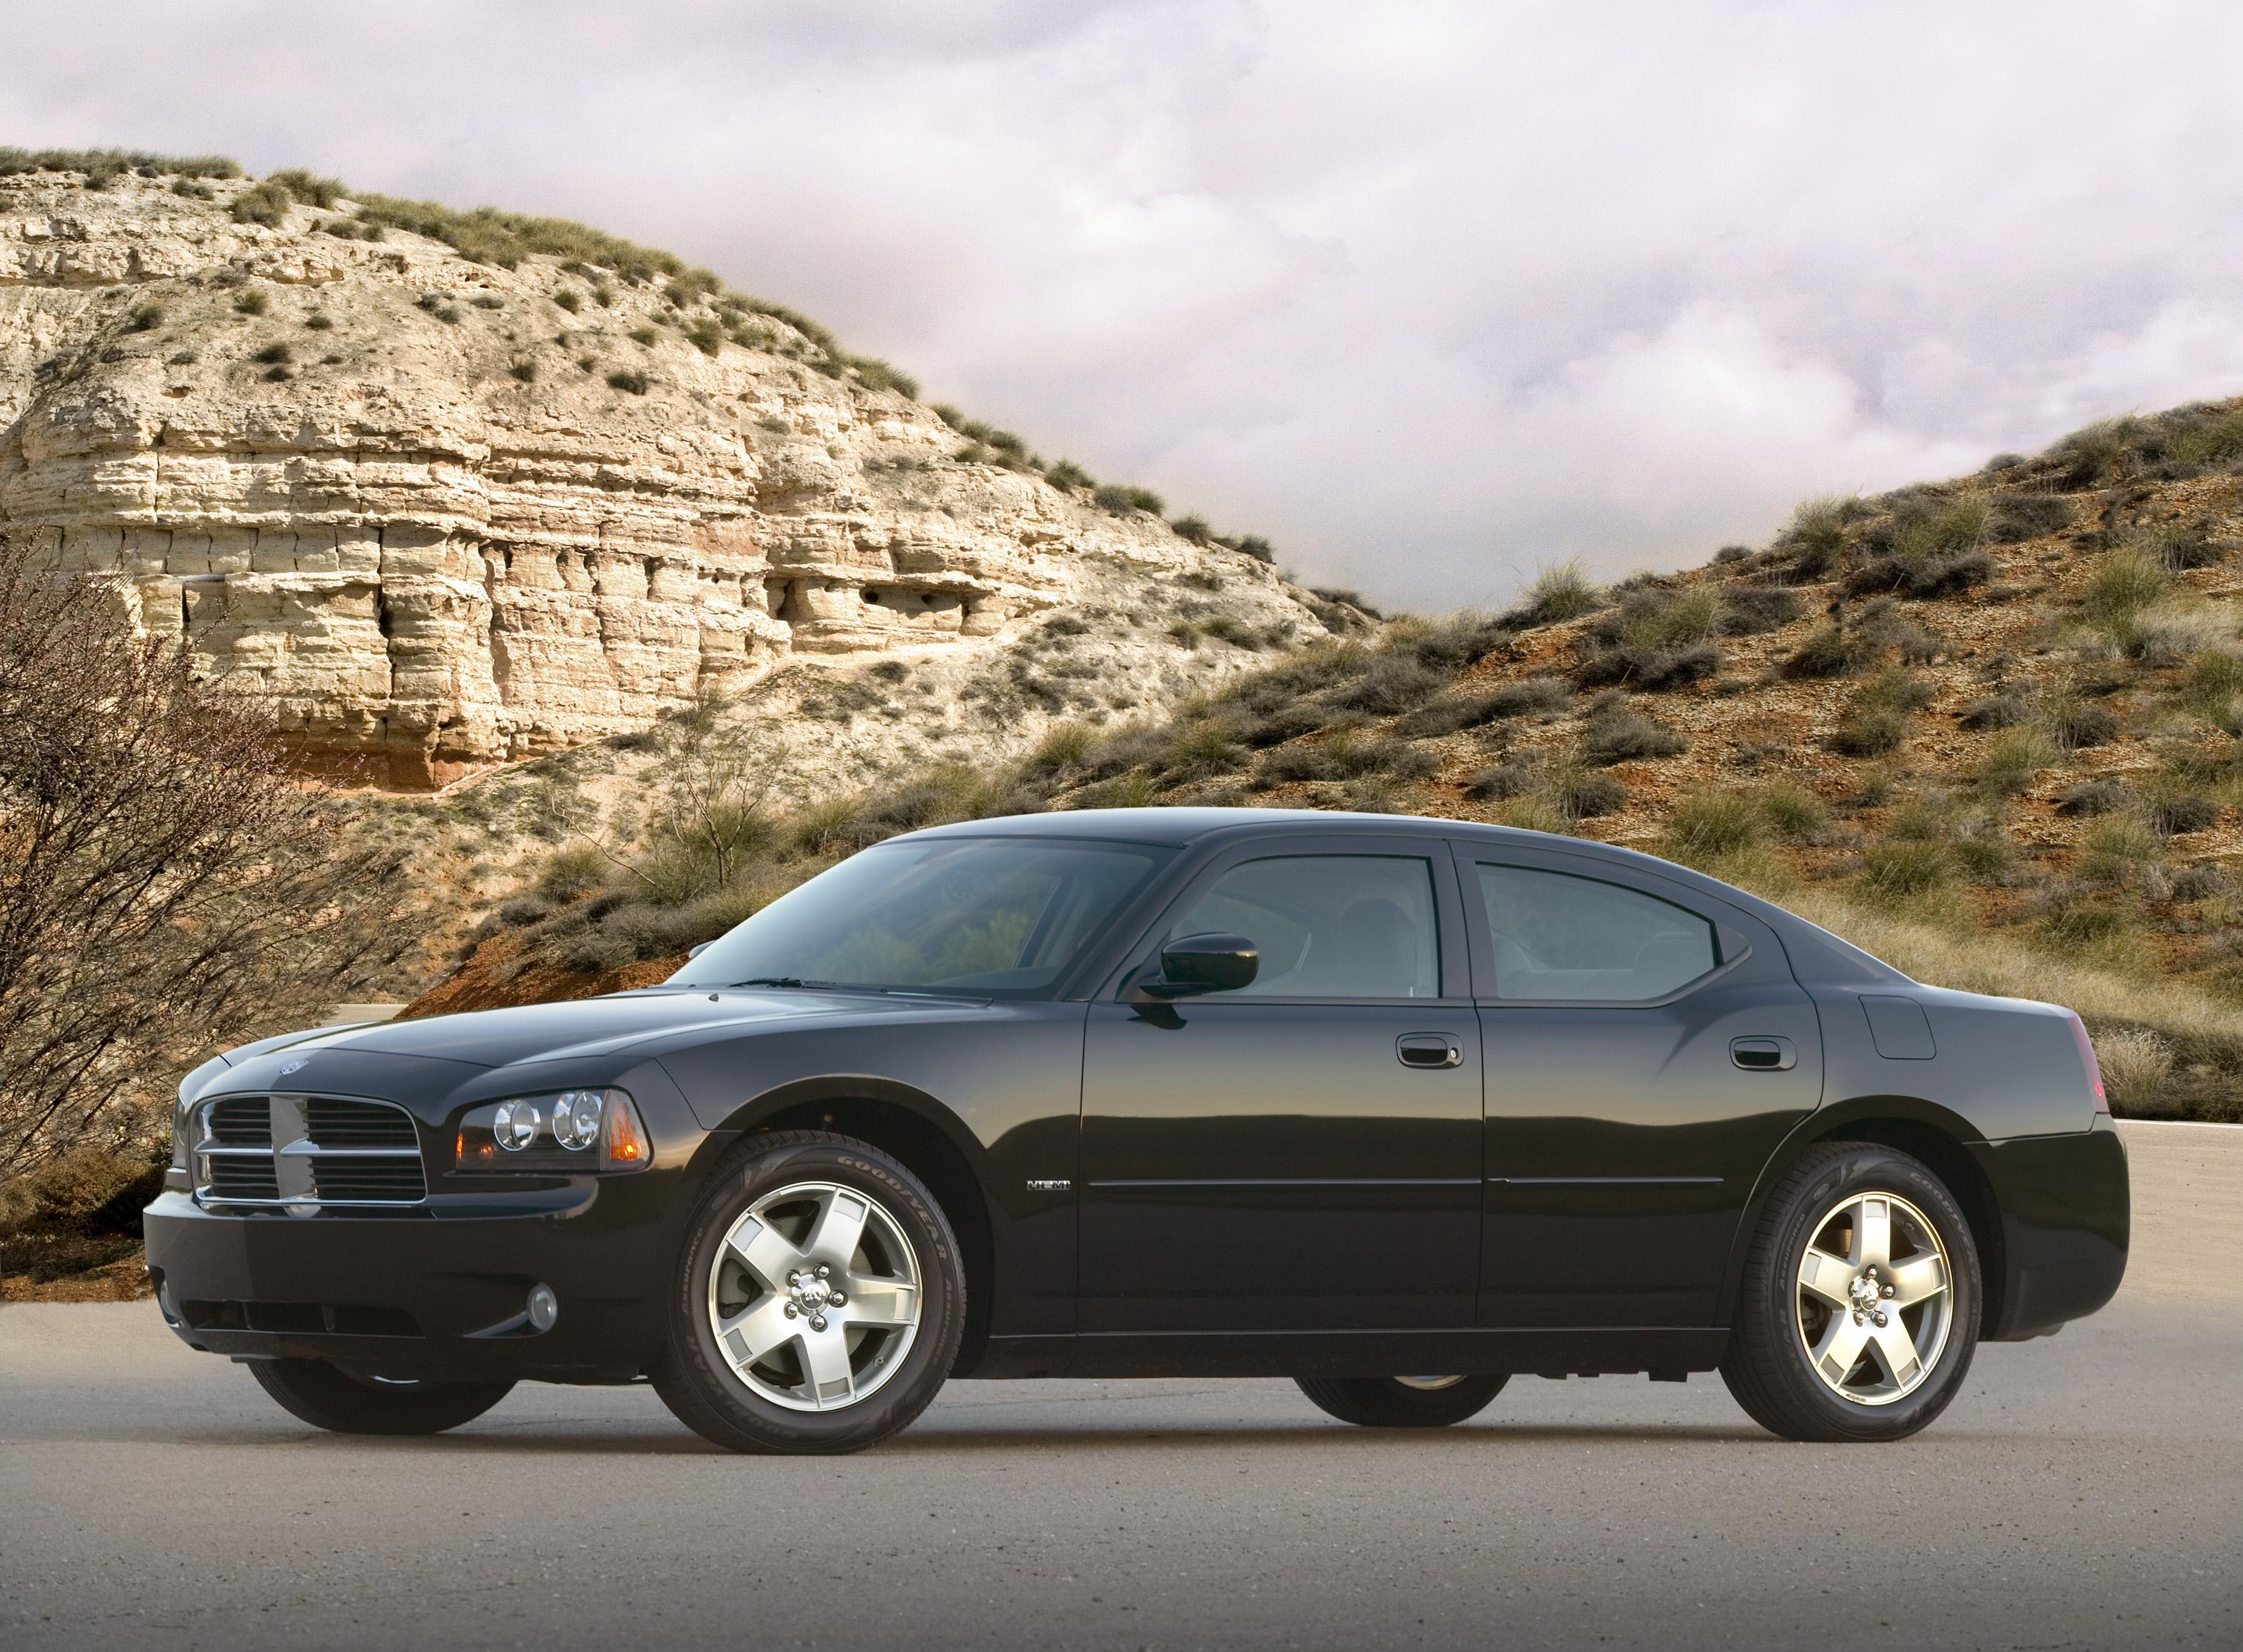 2007 dodge charger review - top speed